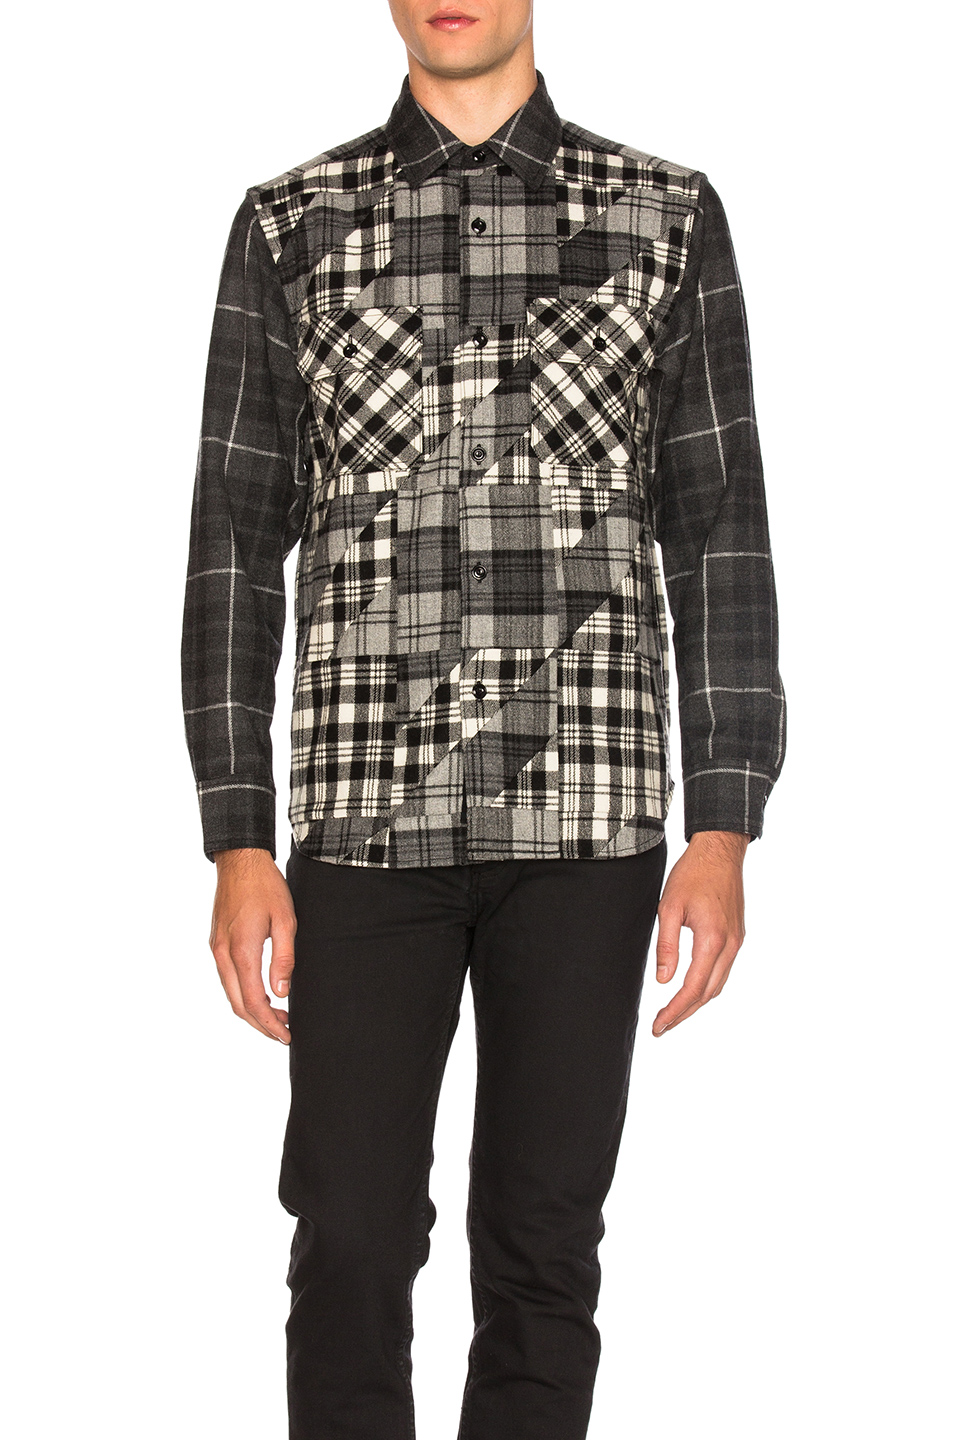 GANRYU Wool Check Shirt in Black,Geometric Print